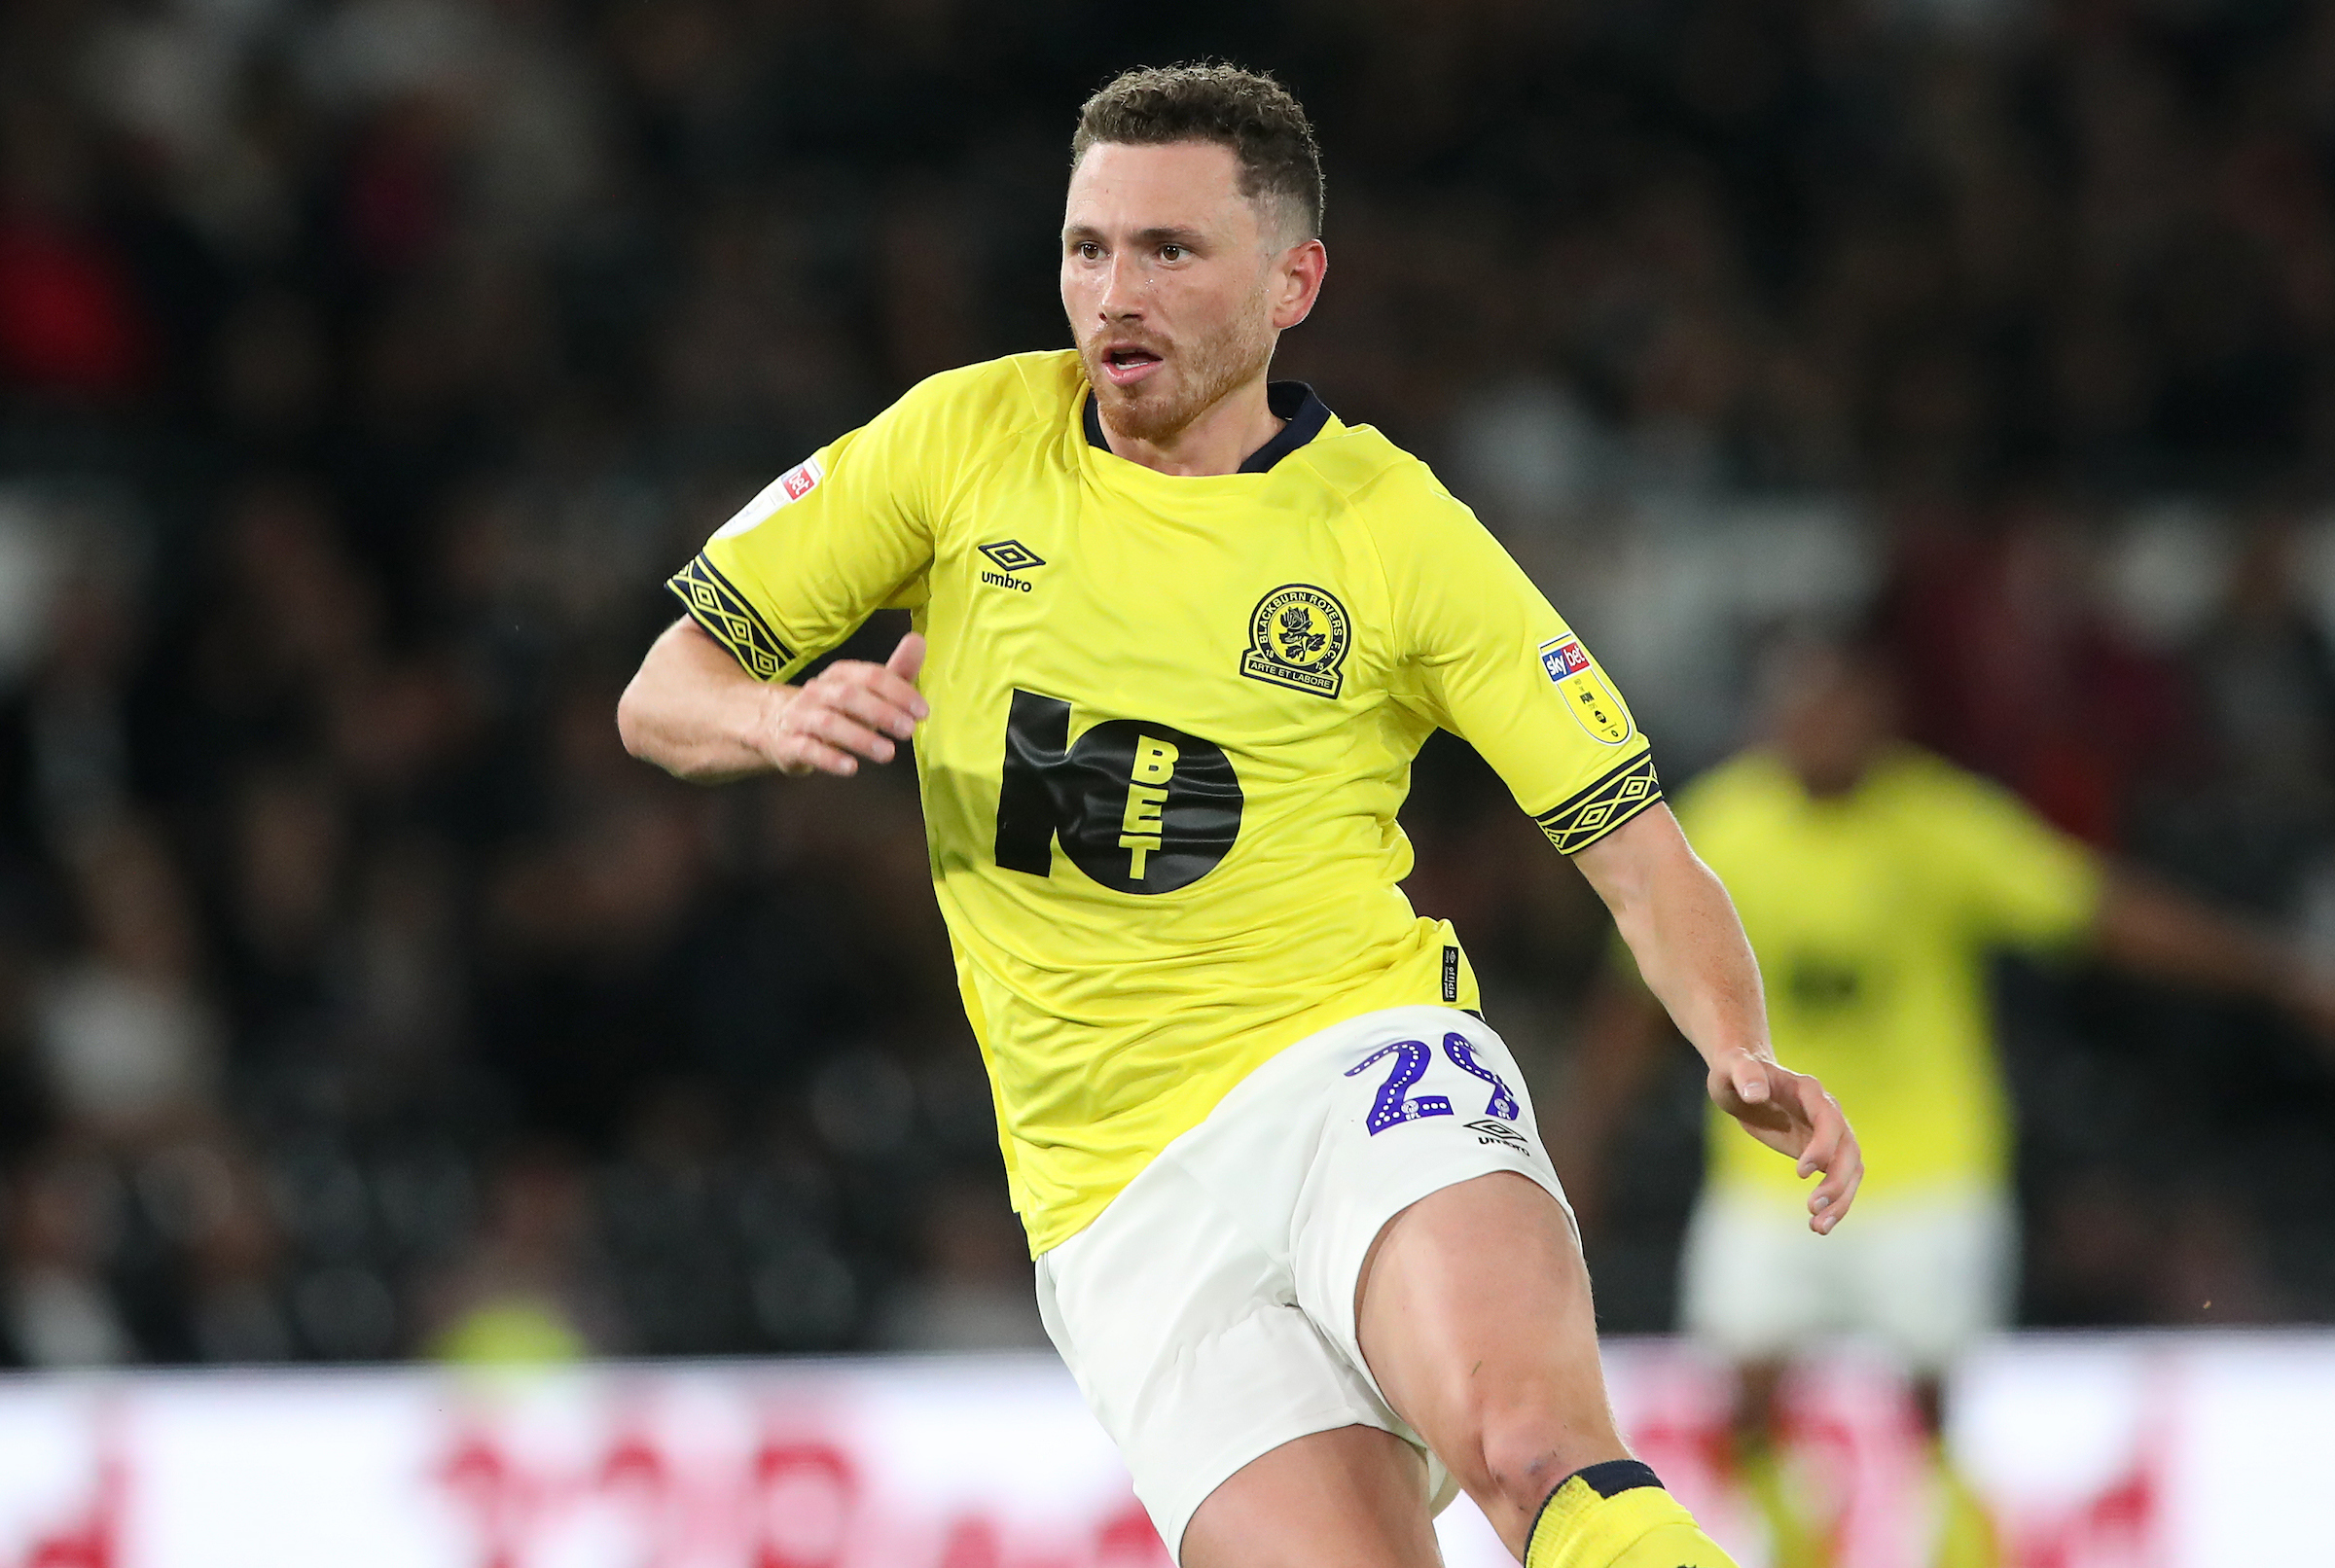 Rovers midfielder Corry Evans has featured in all 12 Championship matches so far